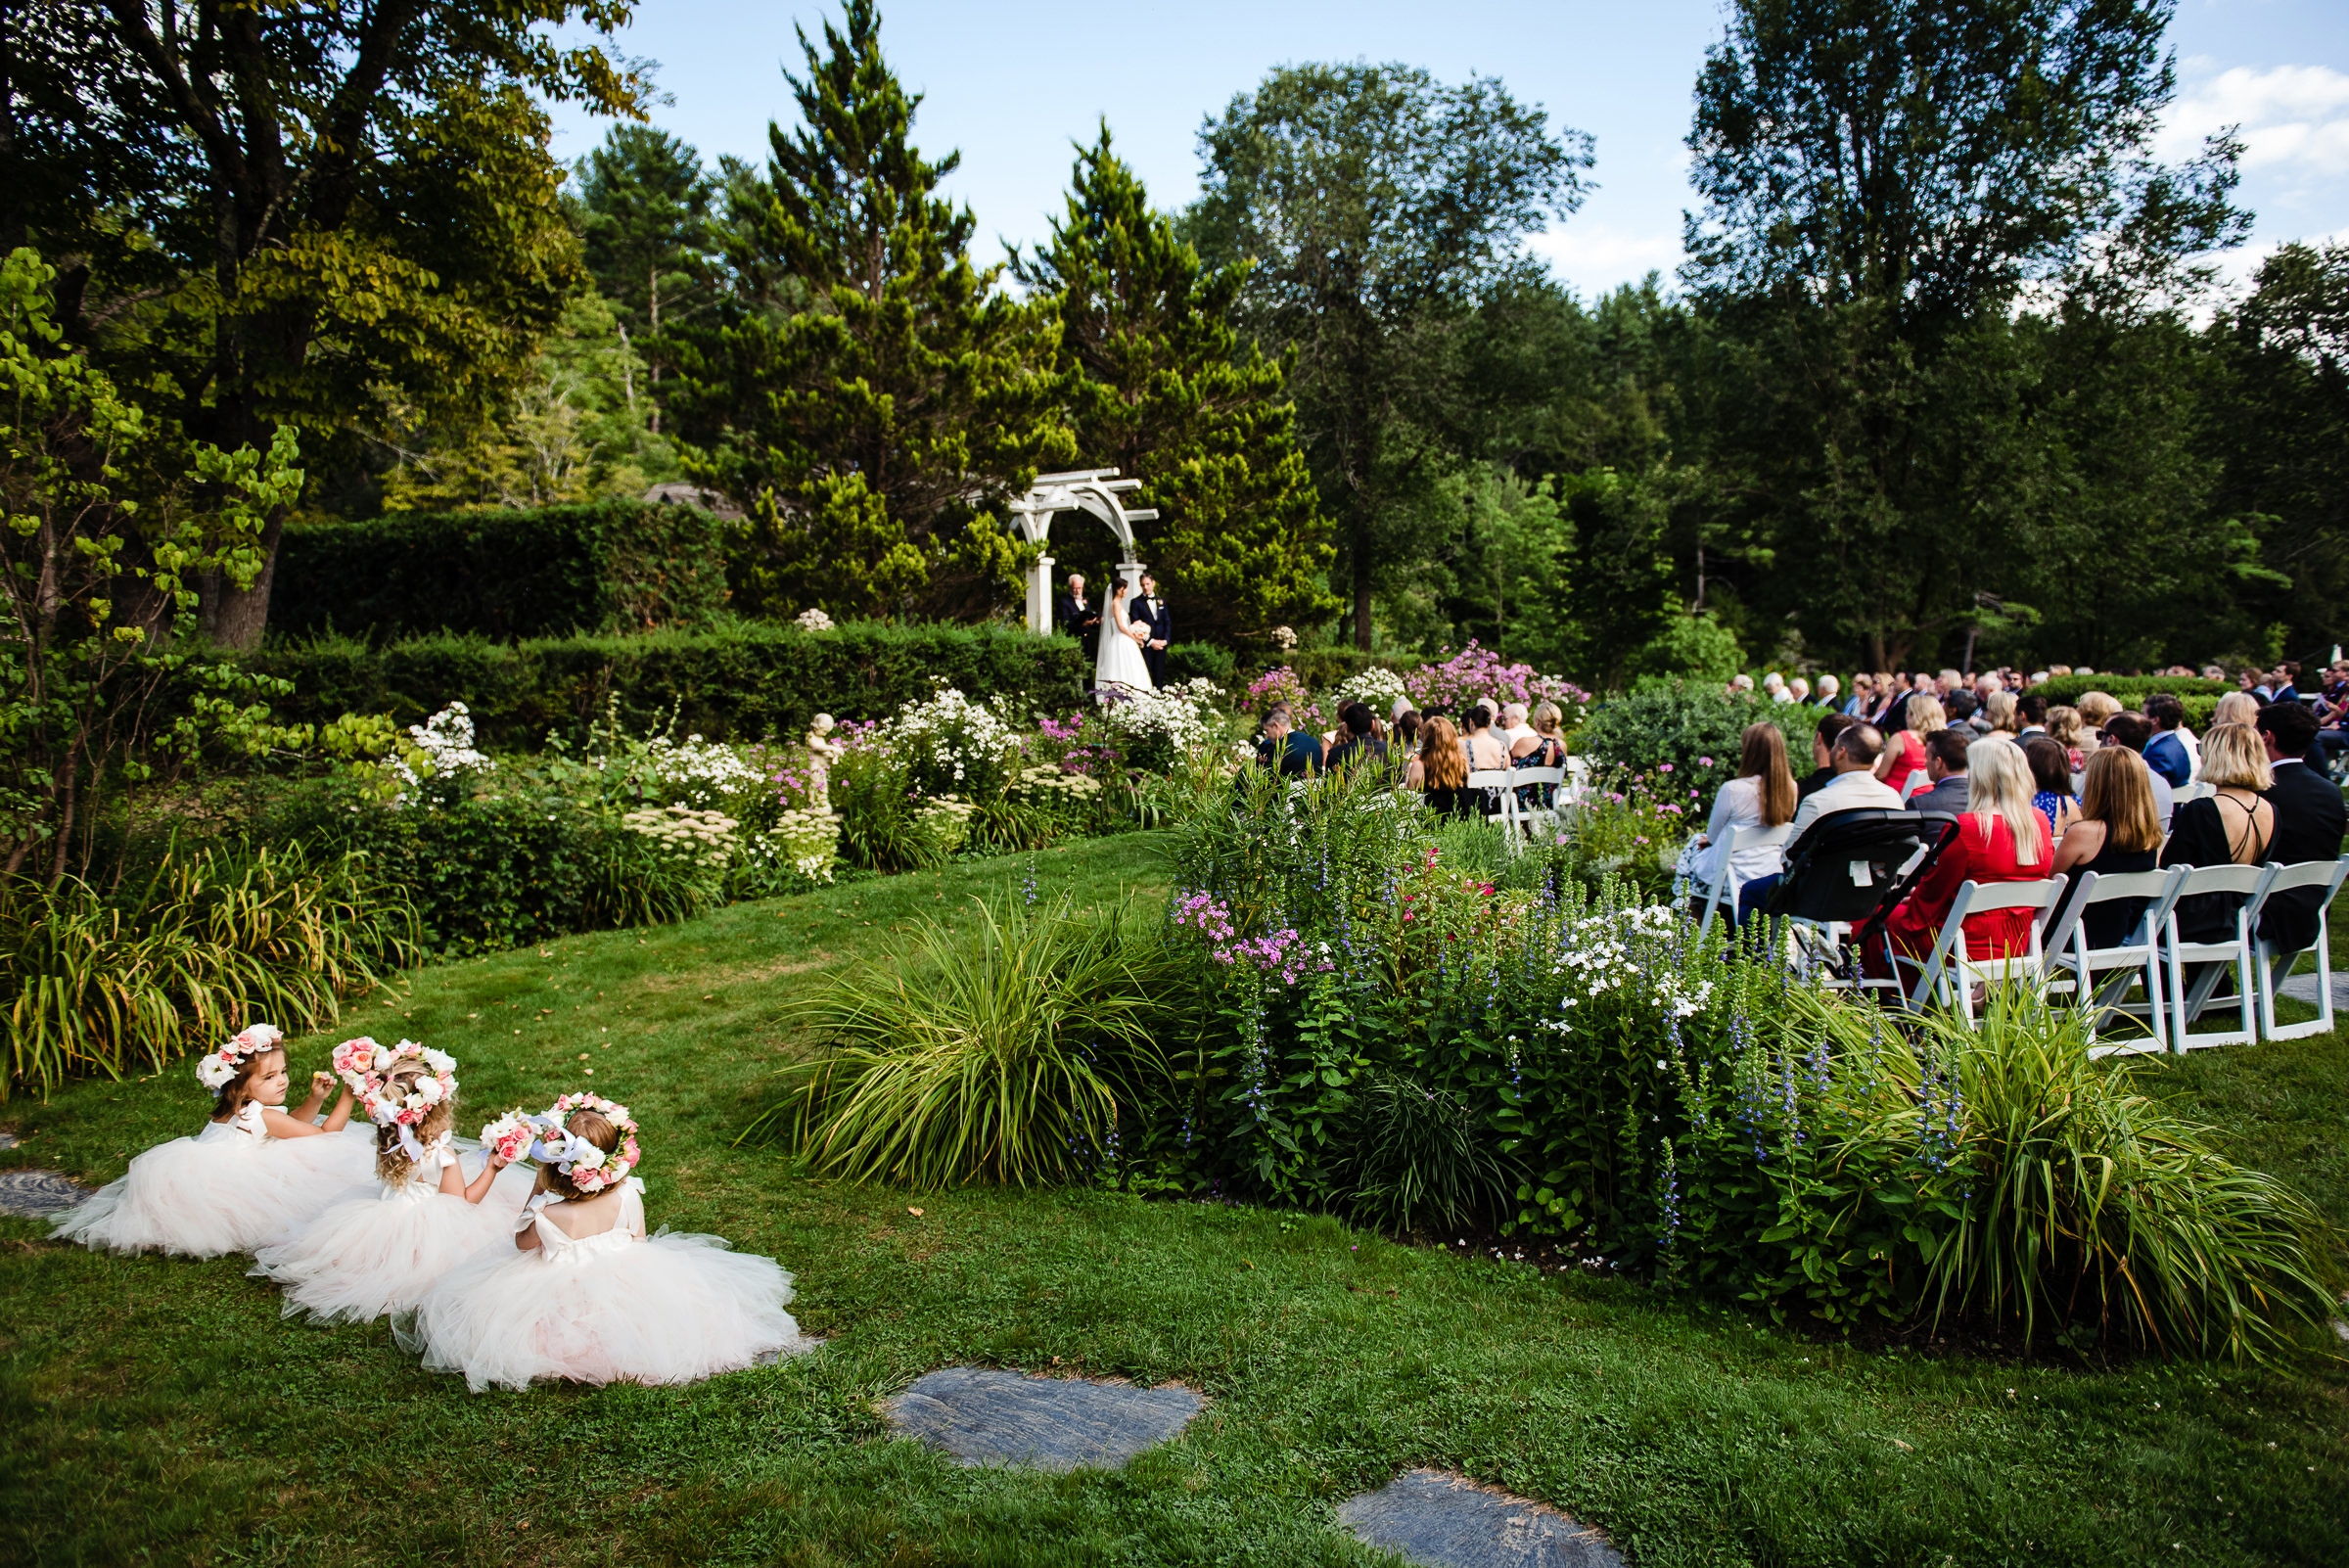 Flower girls chilling while ceremony is happening - photo by Hannah Photography